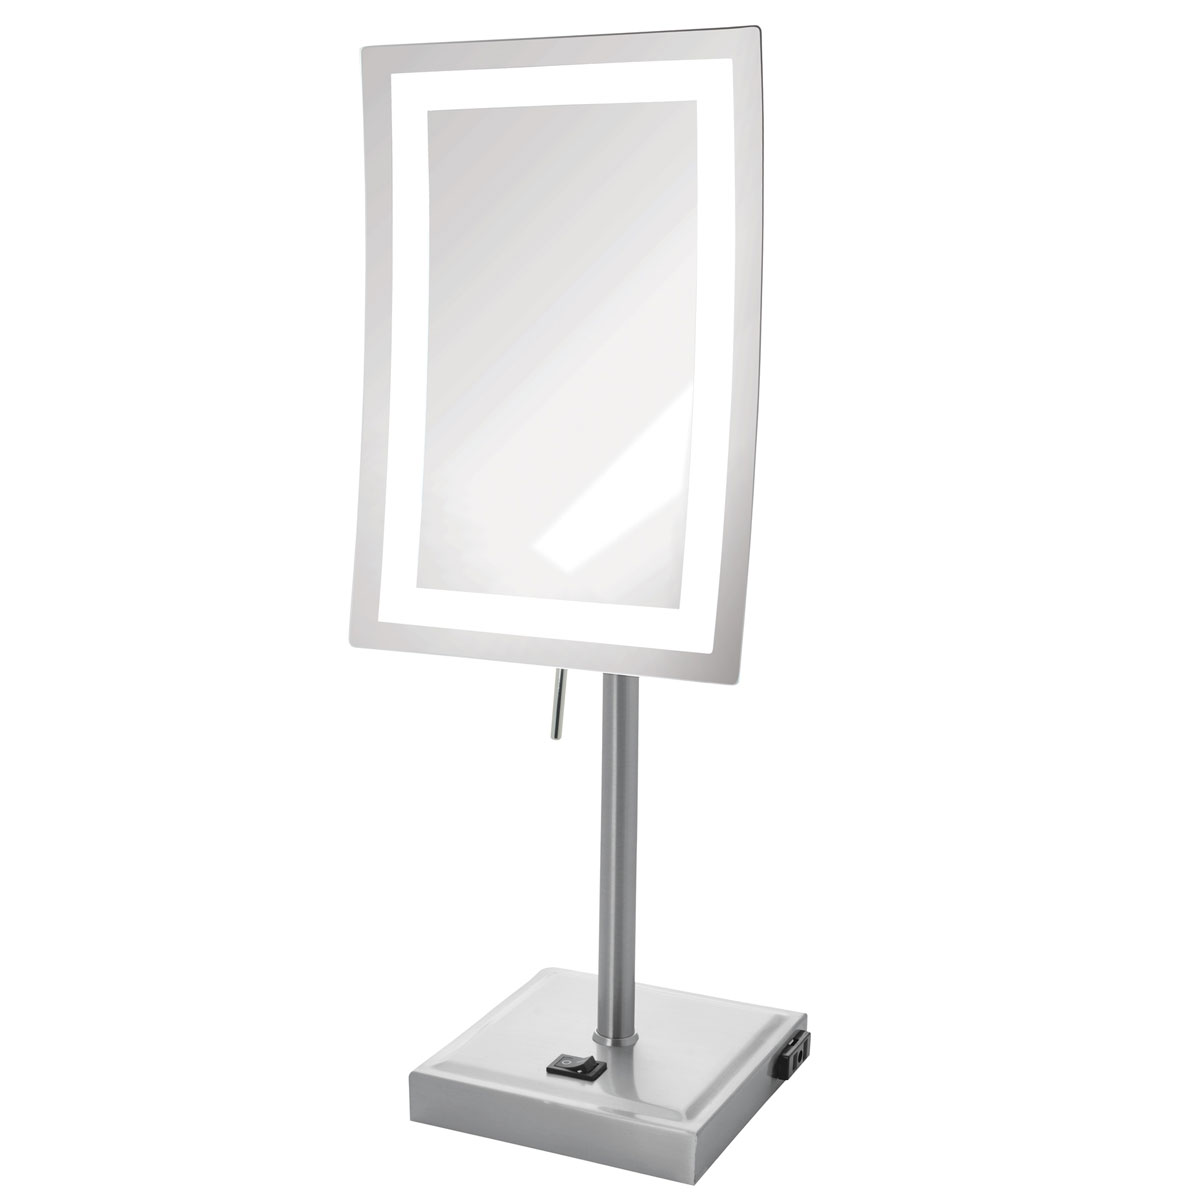 Jerdon Jrt910nl 6 5 Quot X9 Quot Led Lighted Tabletop Mirror 5x